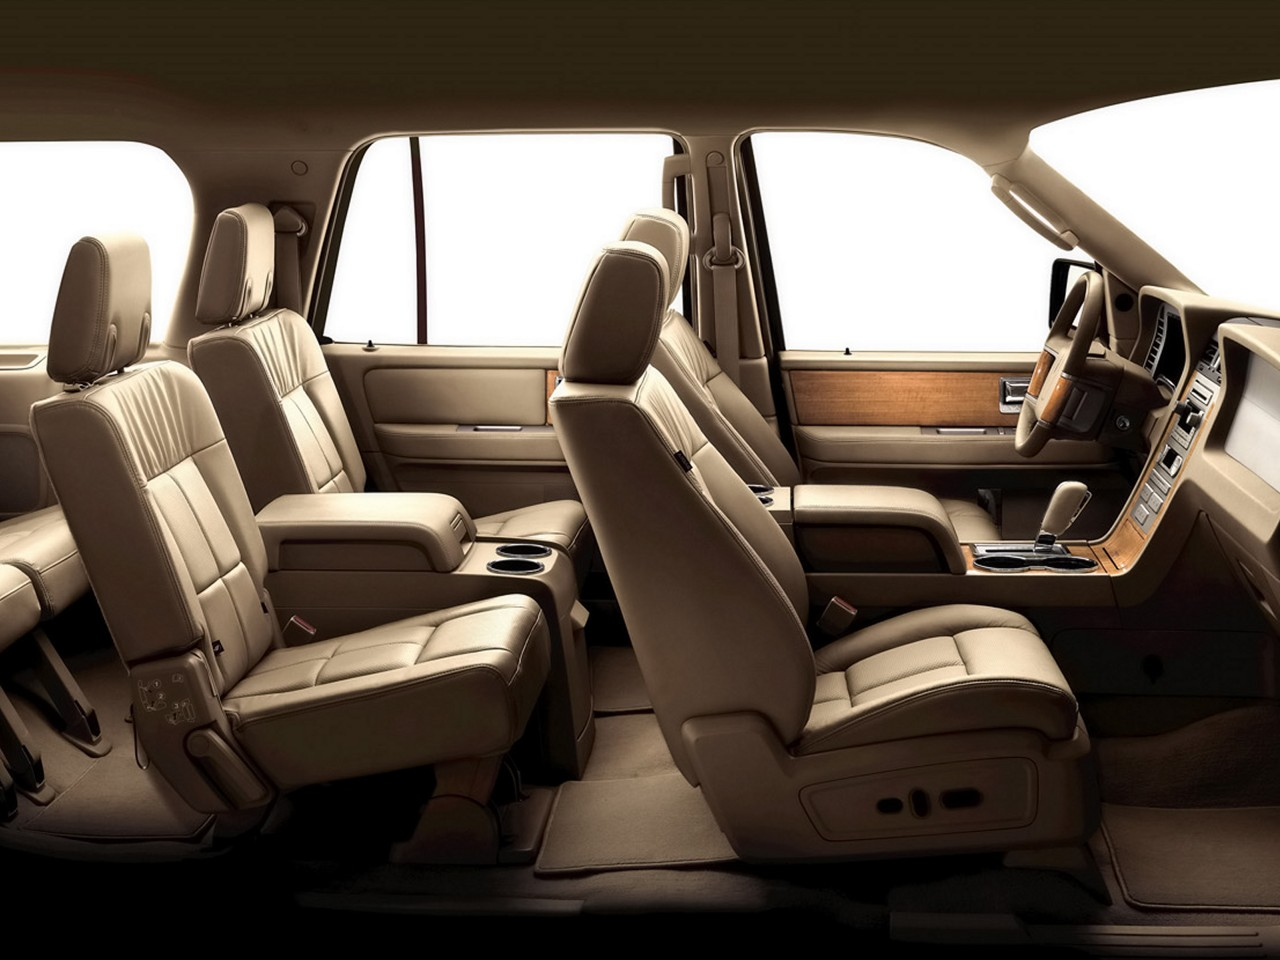 2008 Lincoln Navigator Wallpapers Pictures Specifications Interiors And Exteriors Images